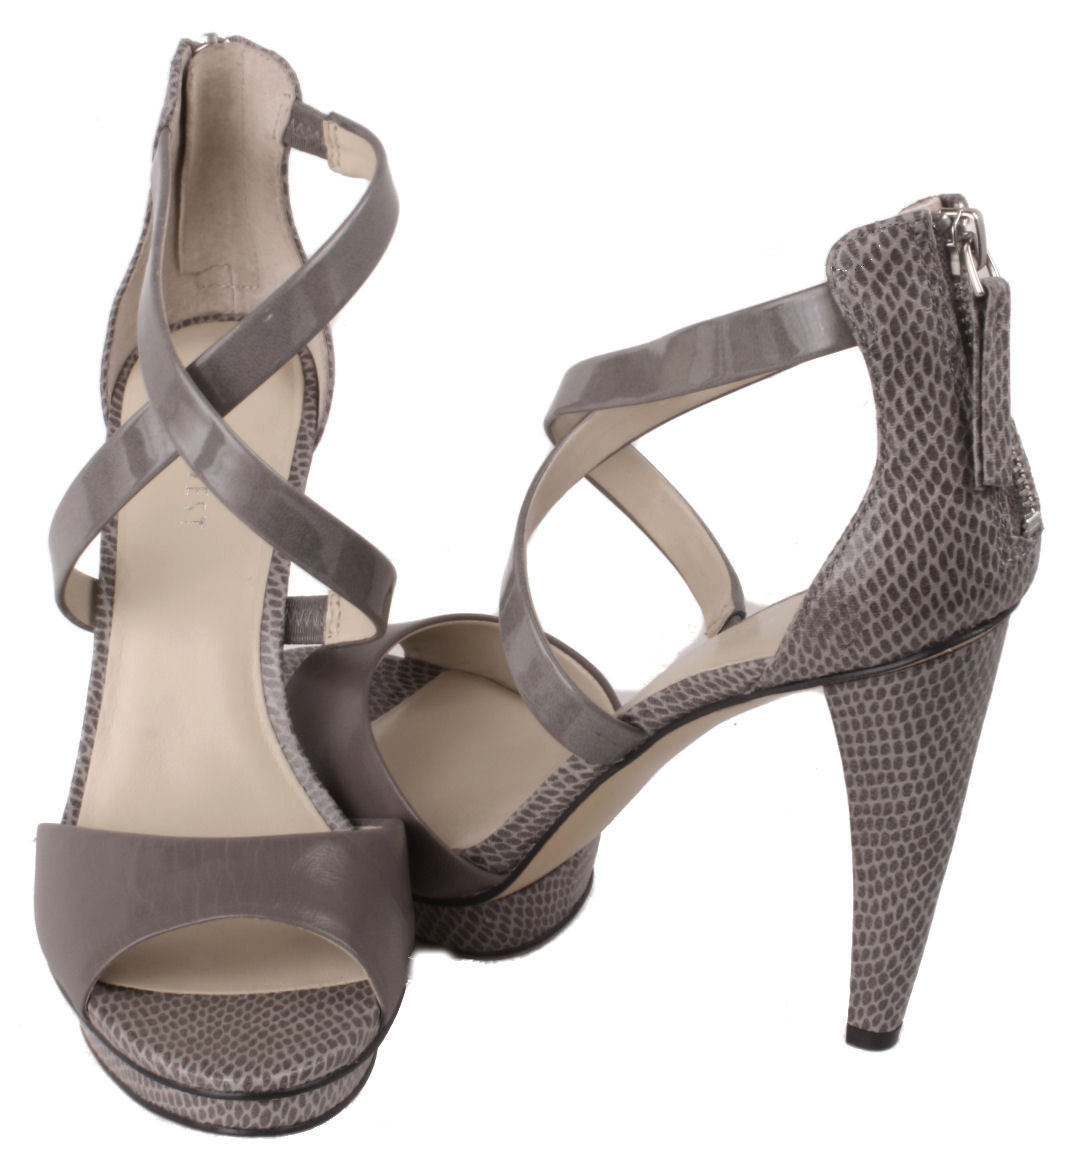 Nine west womens shoes    Cheap clothing stores